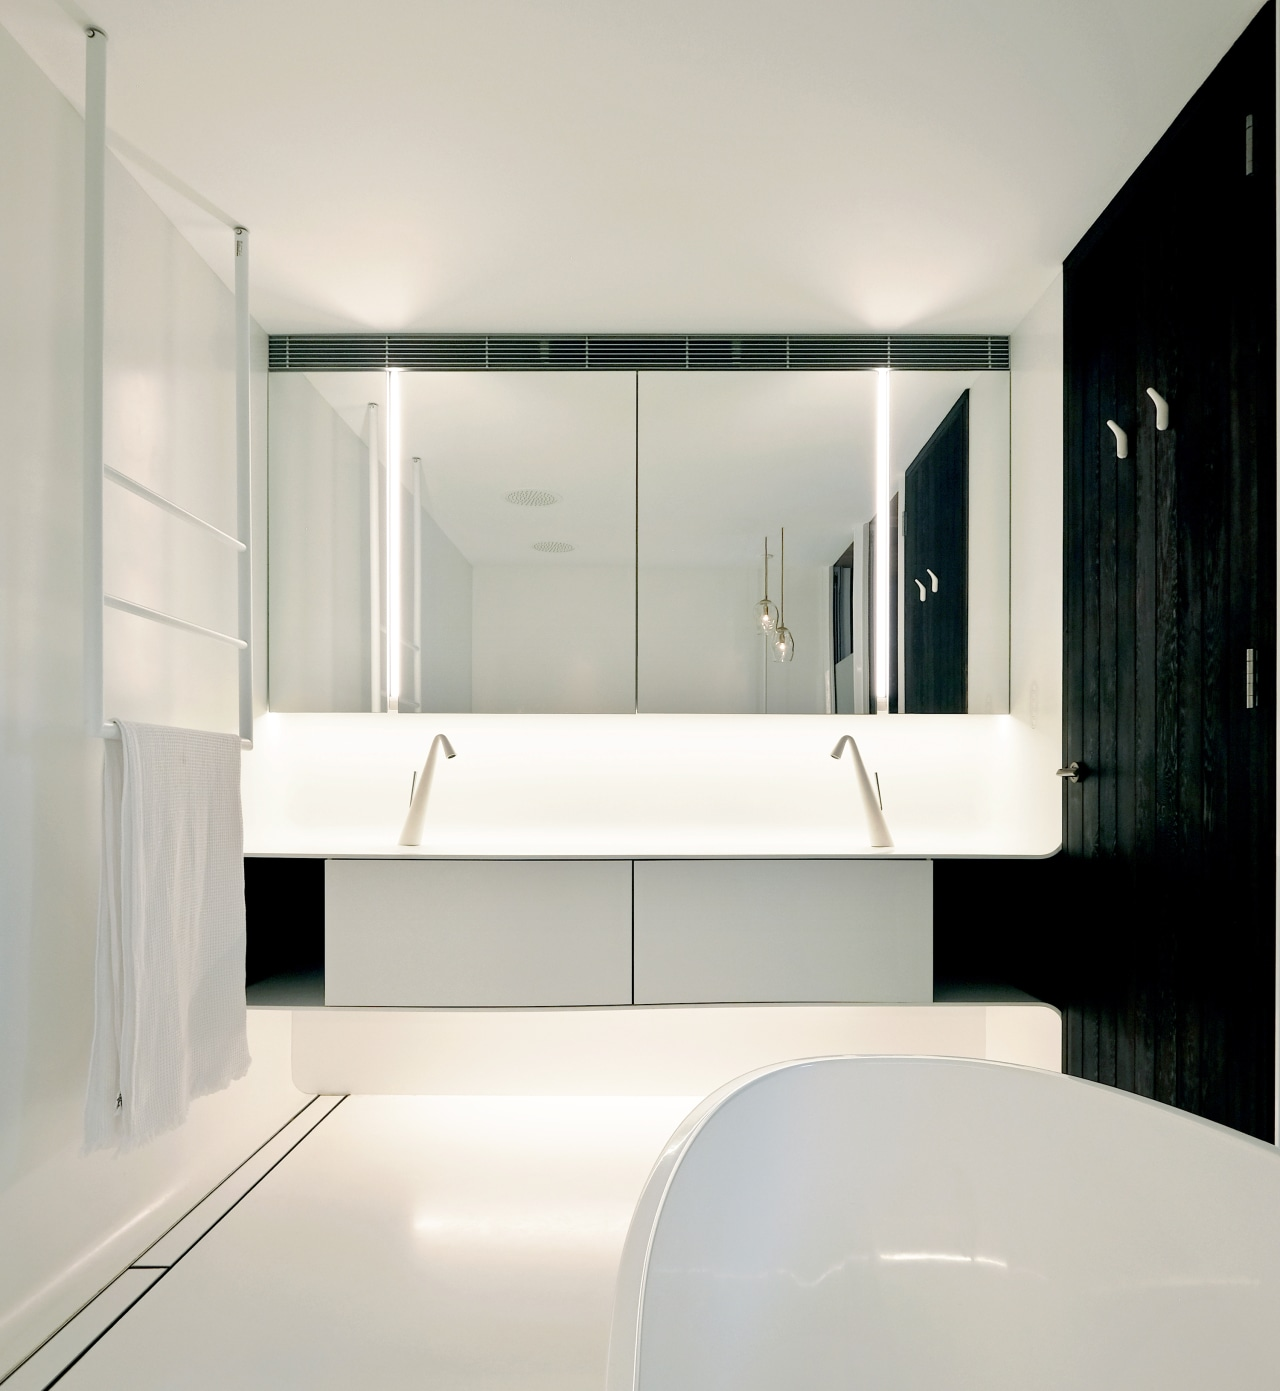 """""""For this bathroom, we chose a continuous Corian architecture, bathroom, bathroom accessory, bathtub, building, ceiling, floor, flooring, furniture, glass, house, interior design, material property, plumbing fixture, property, room, sink, tap, tile, white, gray"""